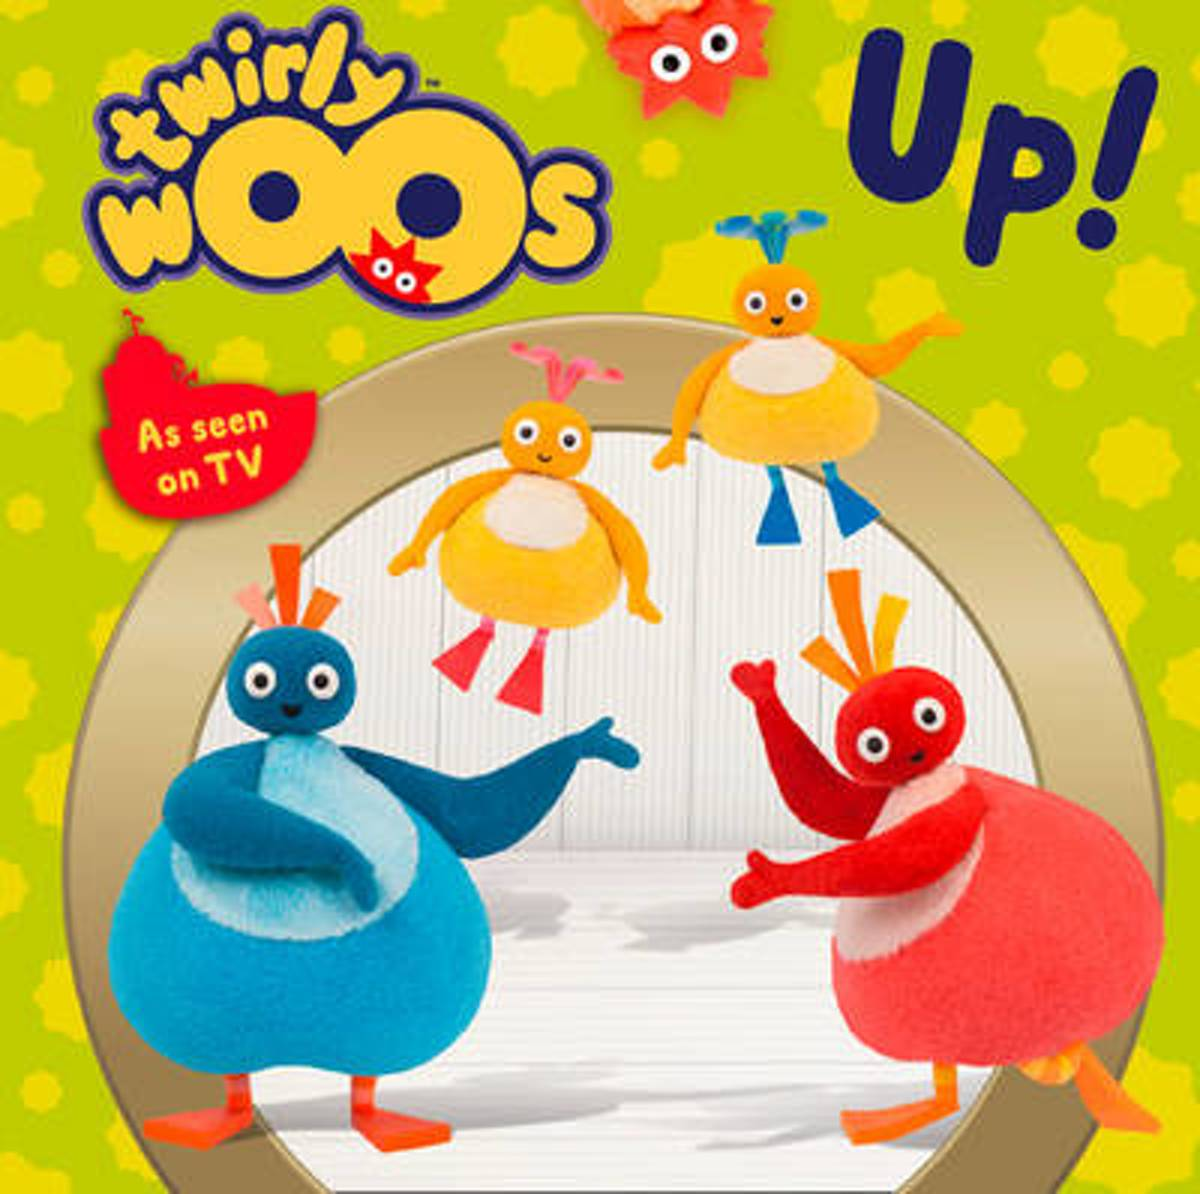 Up! (Twirlywoos)